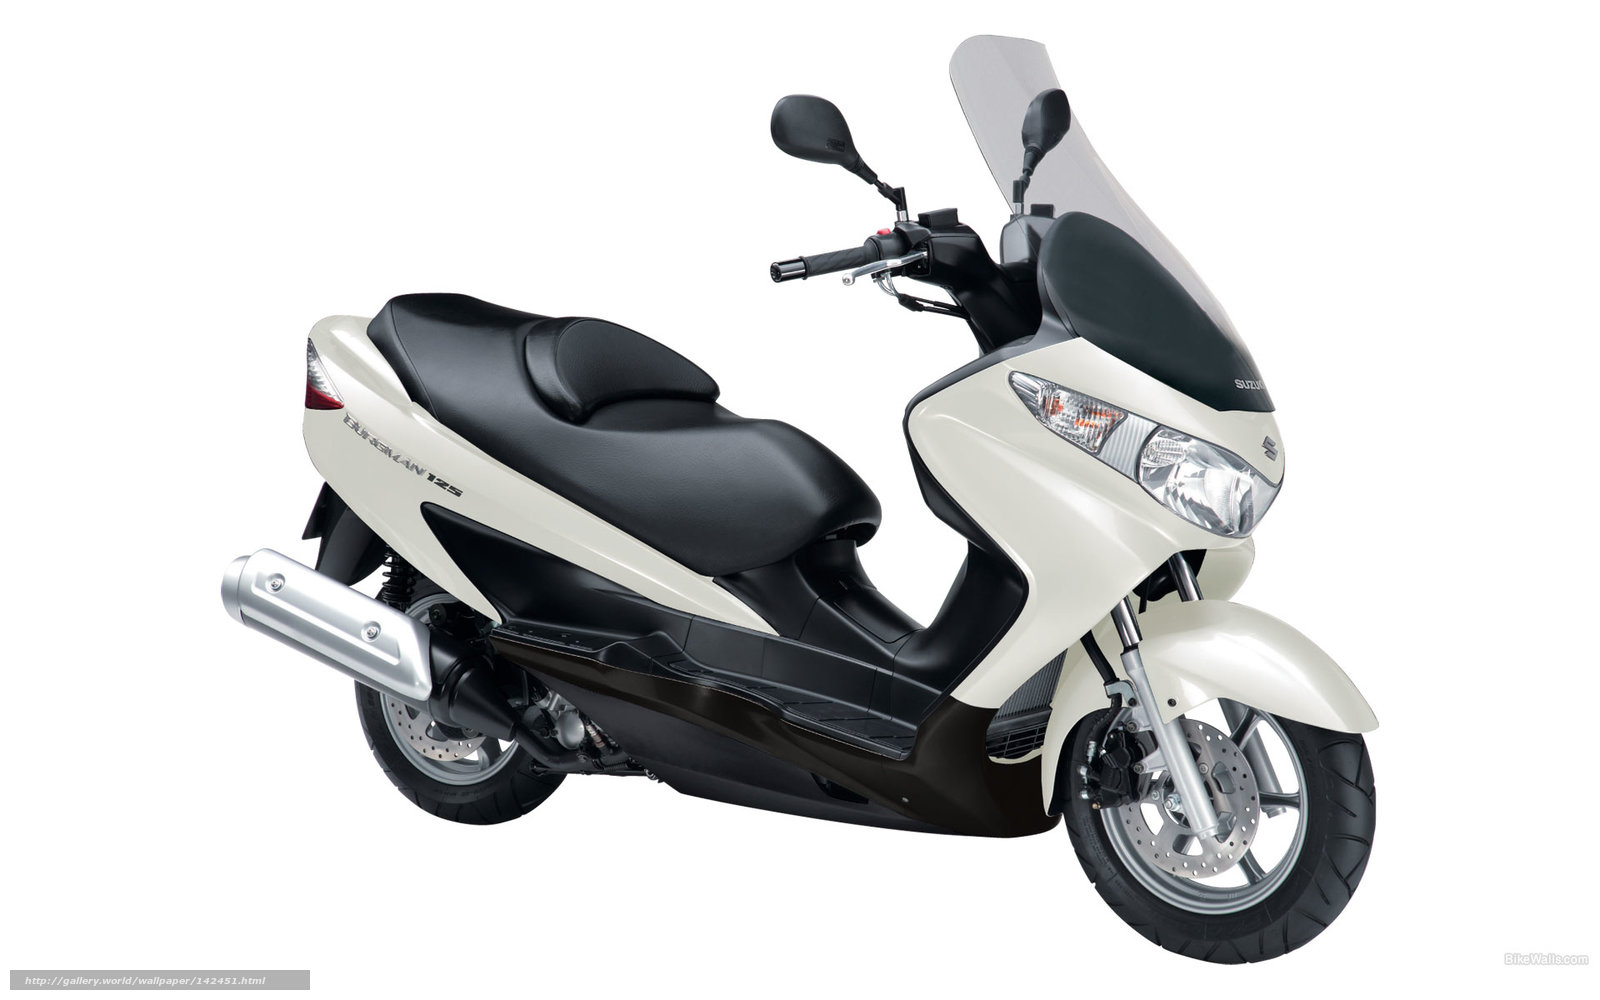 download wallpaper suzuki scooter moped burgman 125 burgman 125 2010 free desktop wallpaper. Black Bedroom Furniture Sets. Home Design Ideas